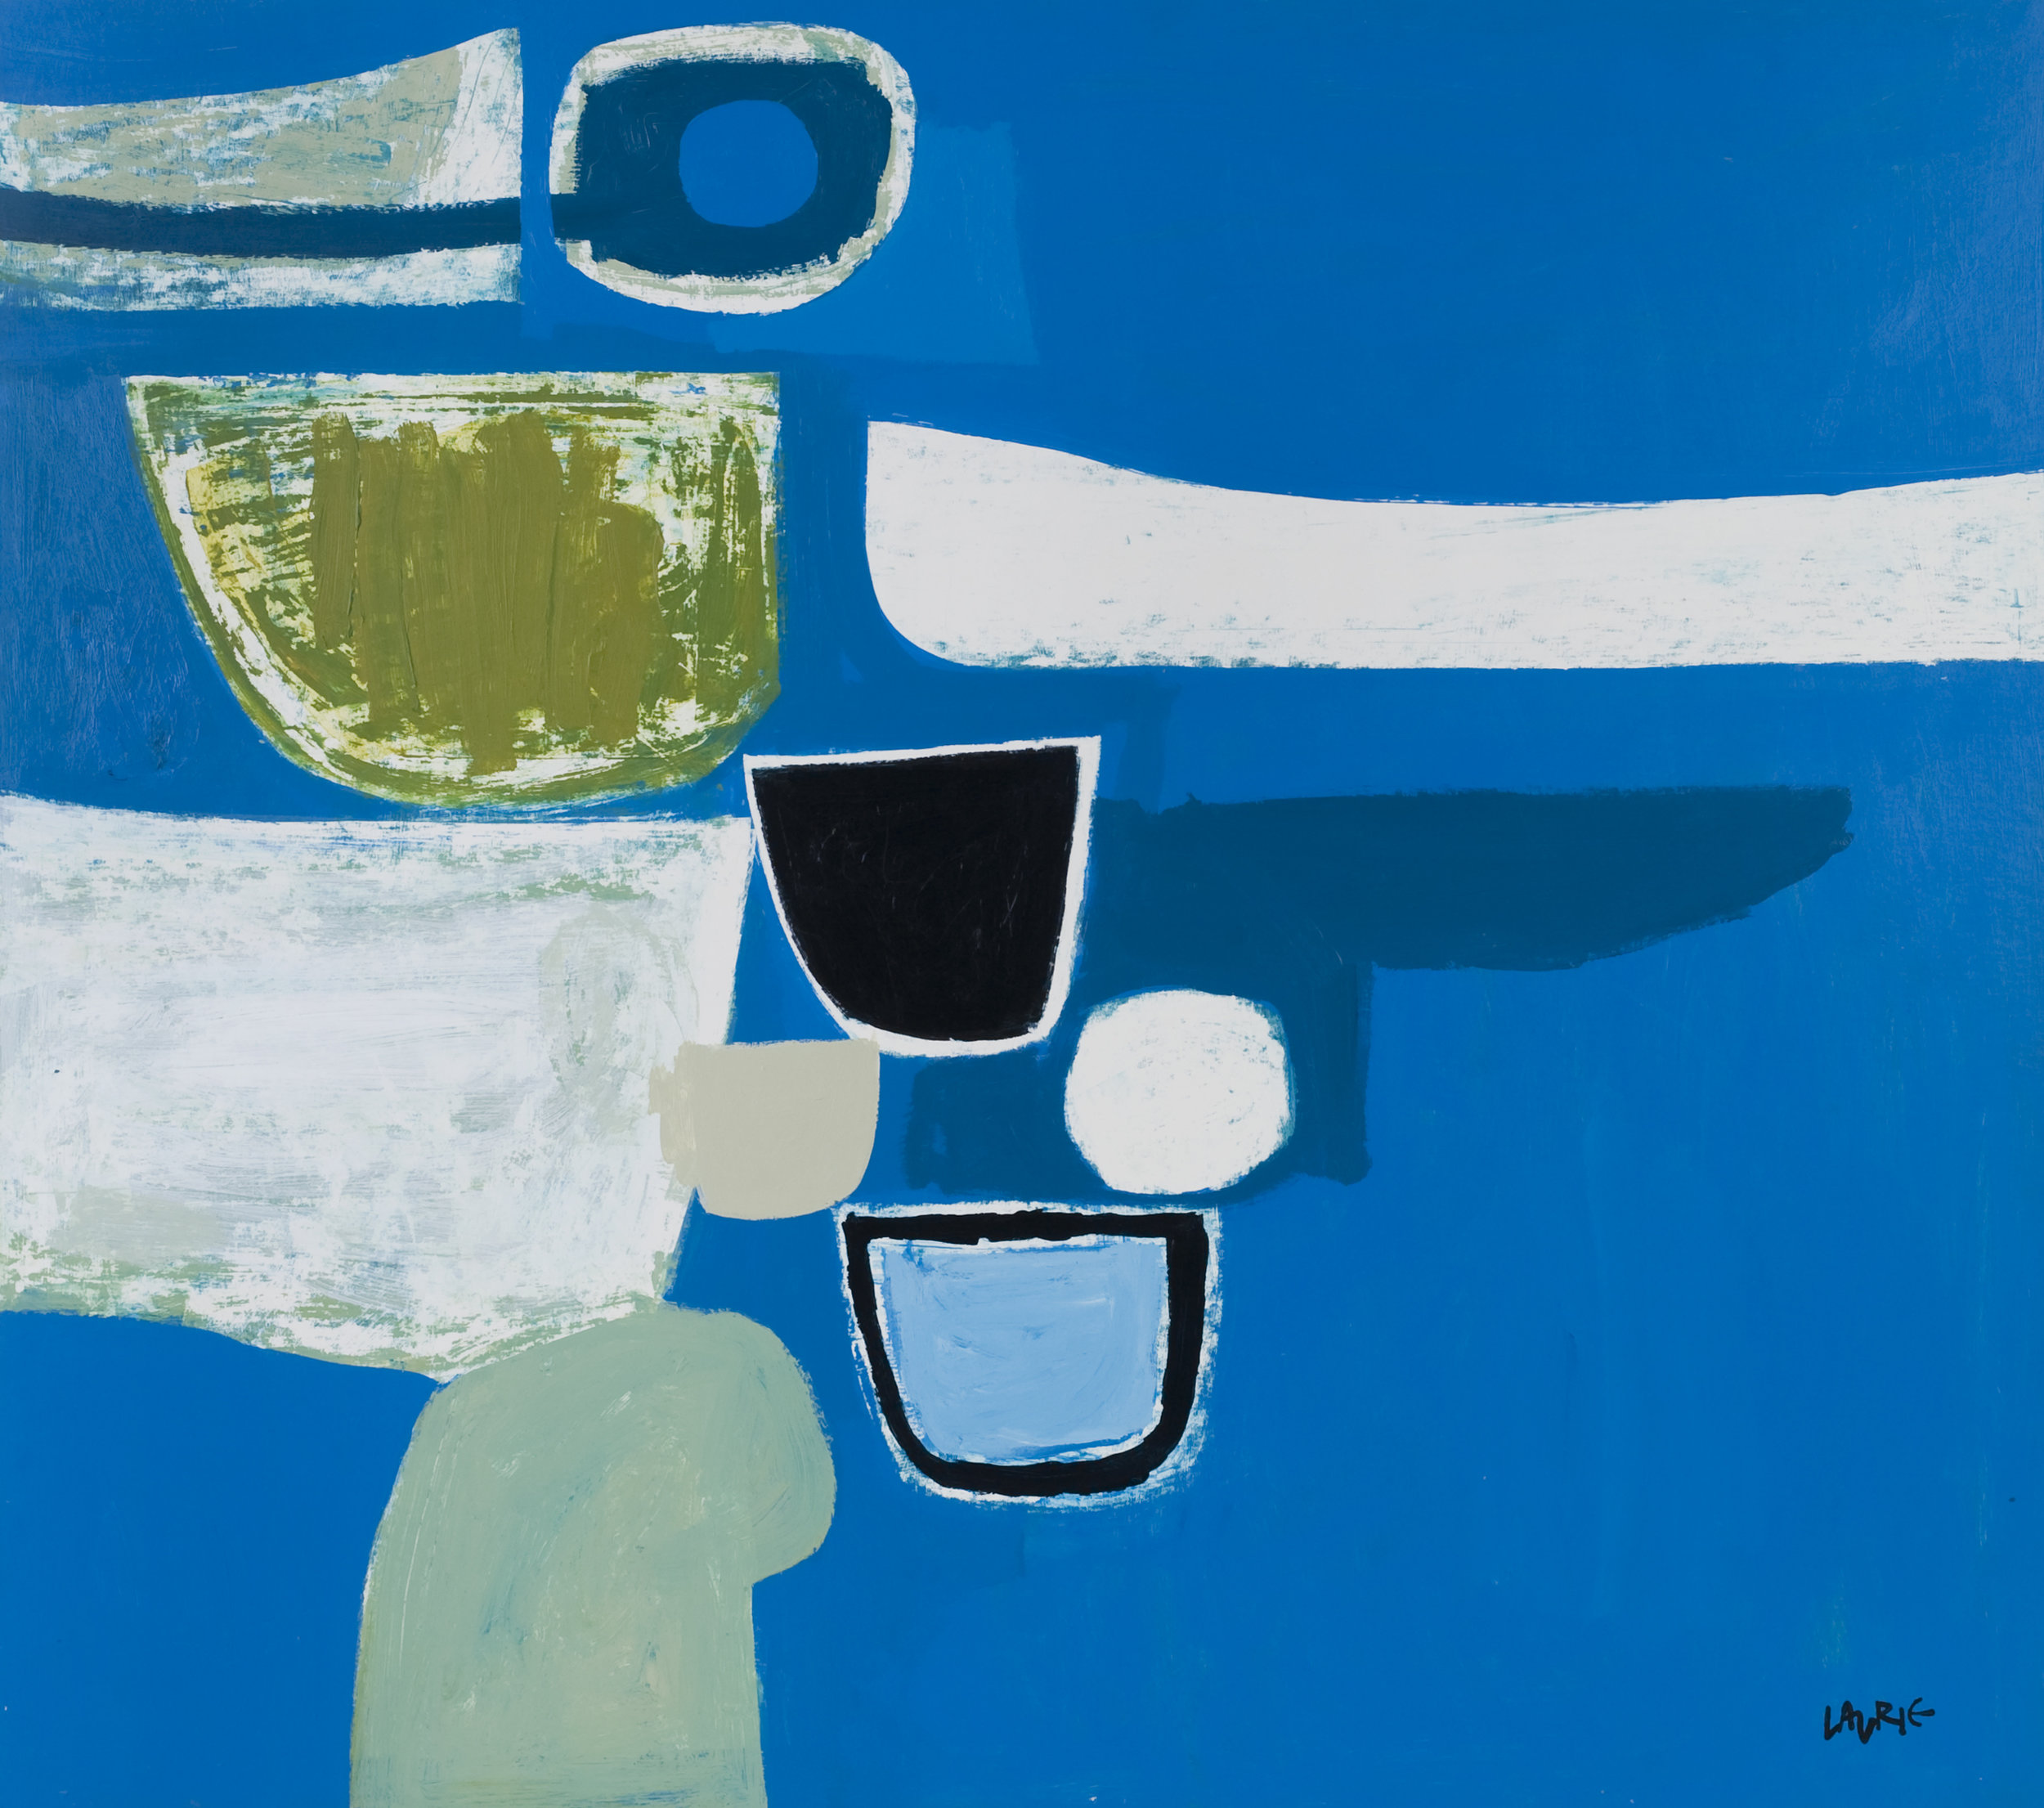 Title: Cretan Harbour Size: 81 x 91 cm Medium: Acrylic on canvas Price: £4700 * Please contact the gallery for availability